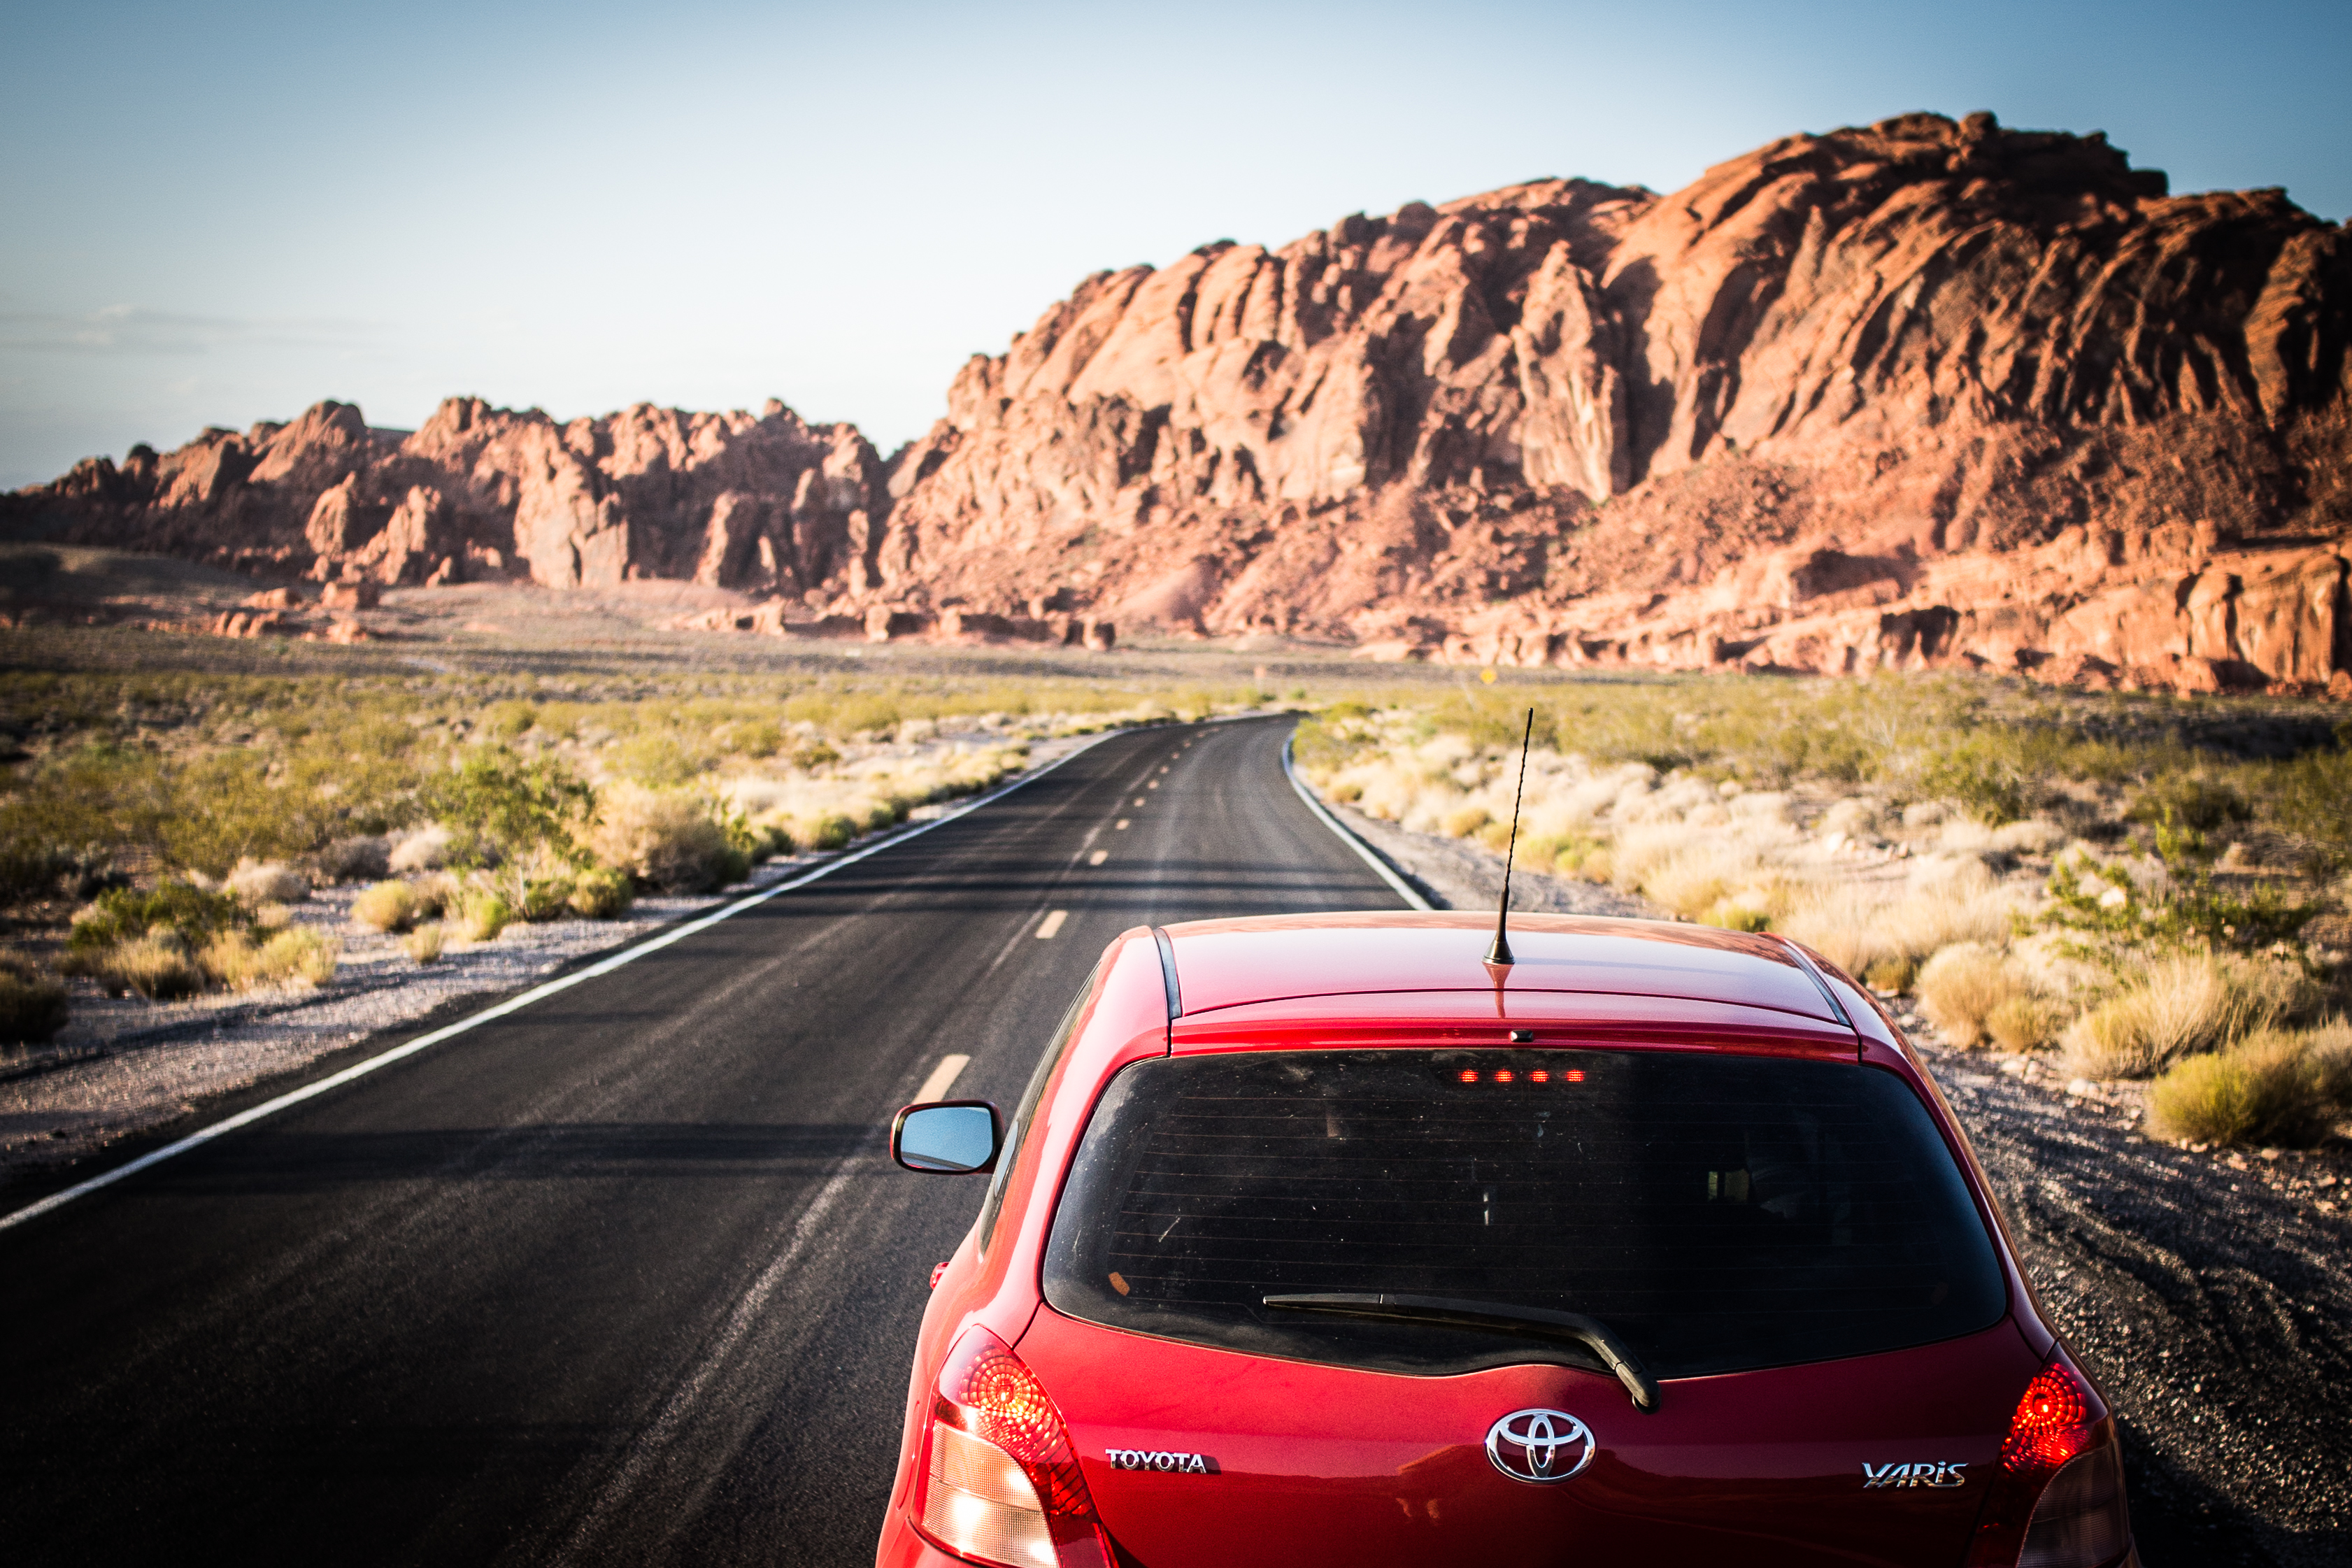 Yaris at Valley of Fire State Park, Nevada, USA